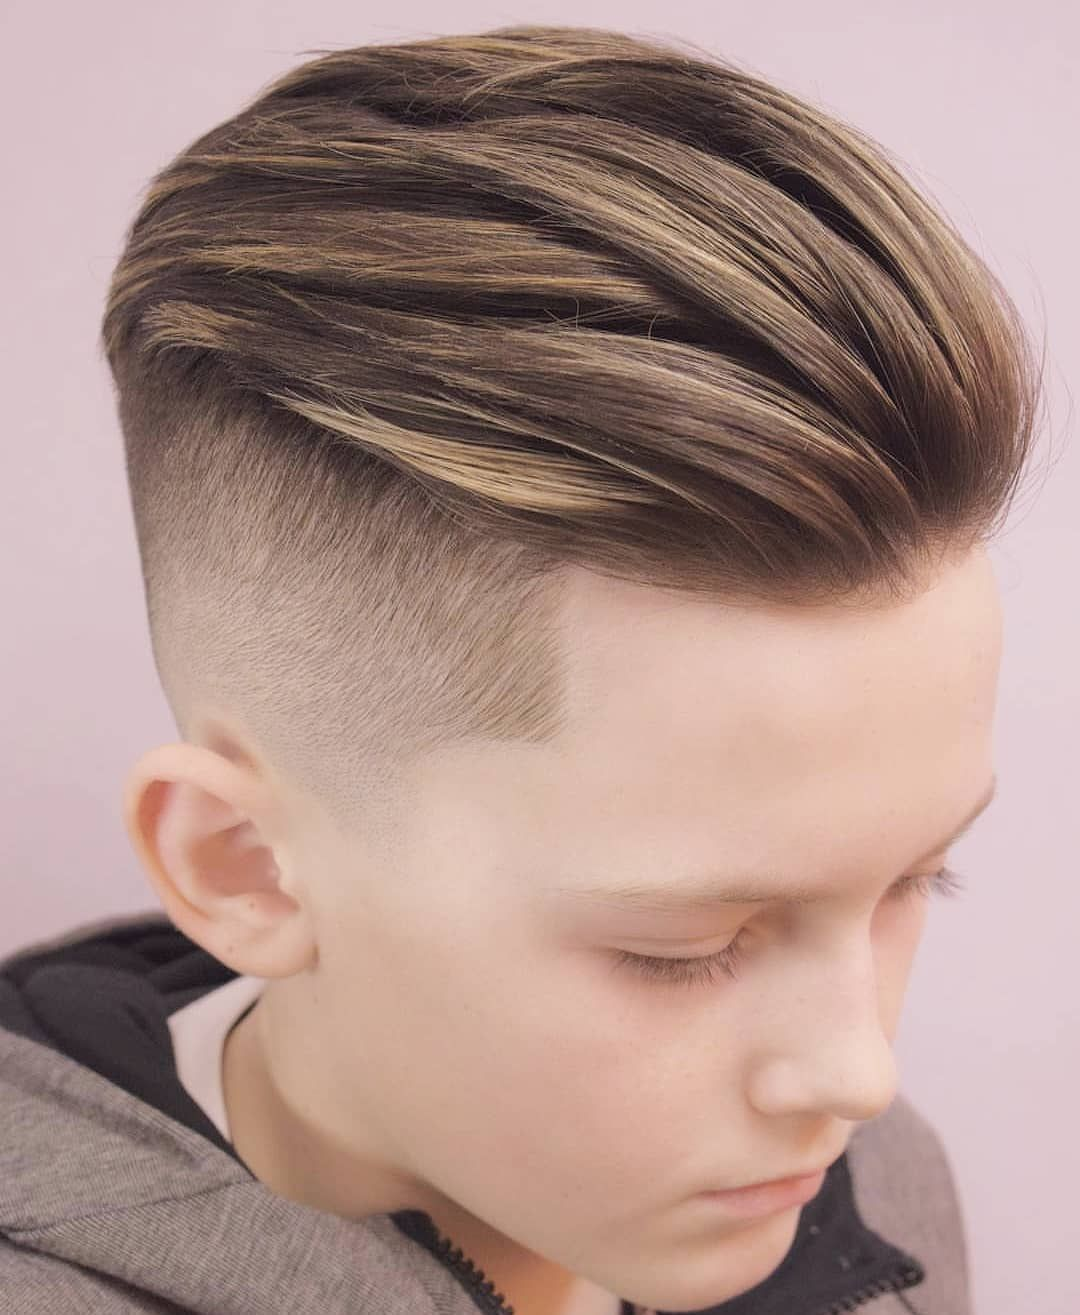 Pin On Boys Hair